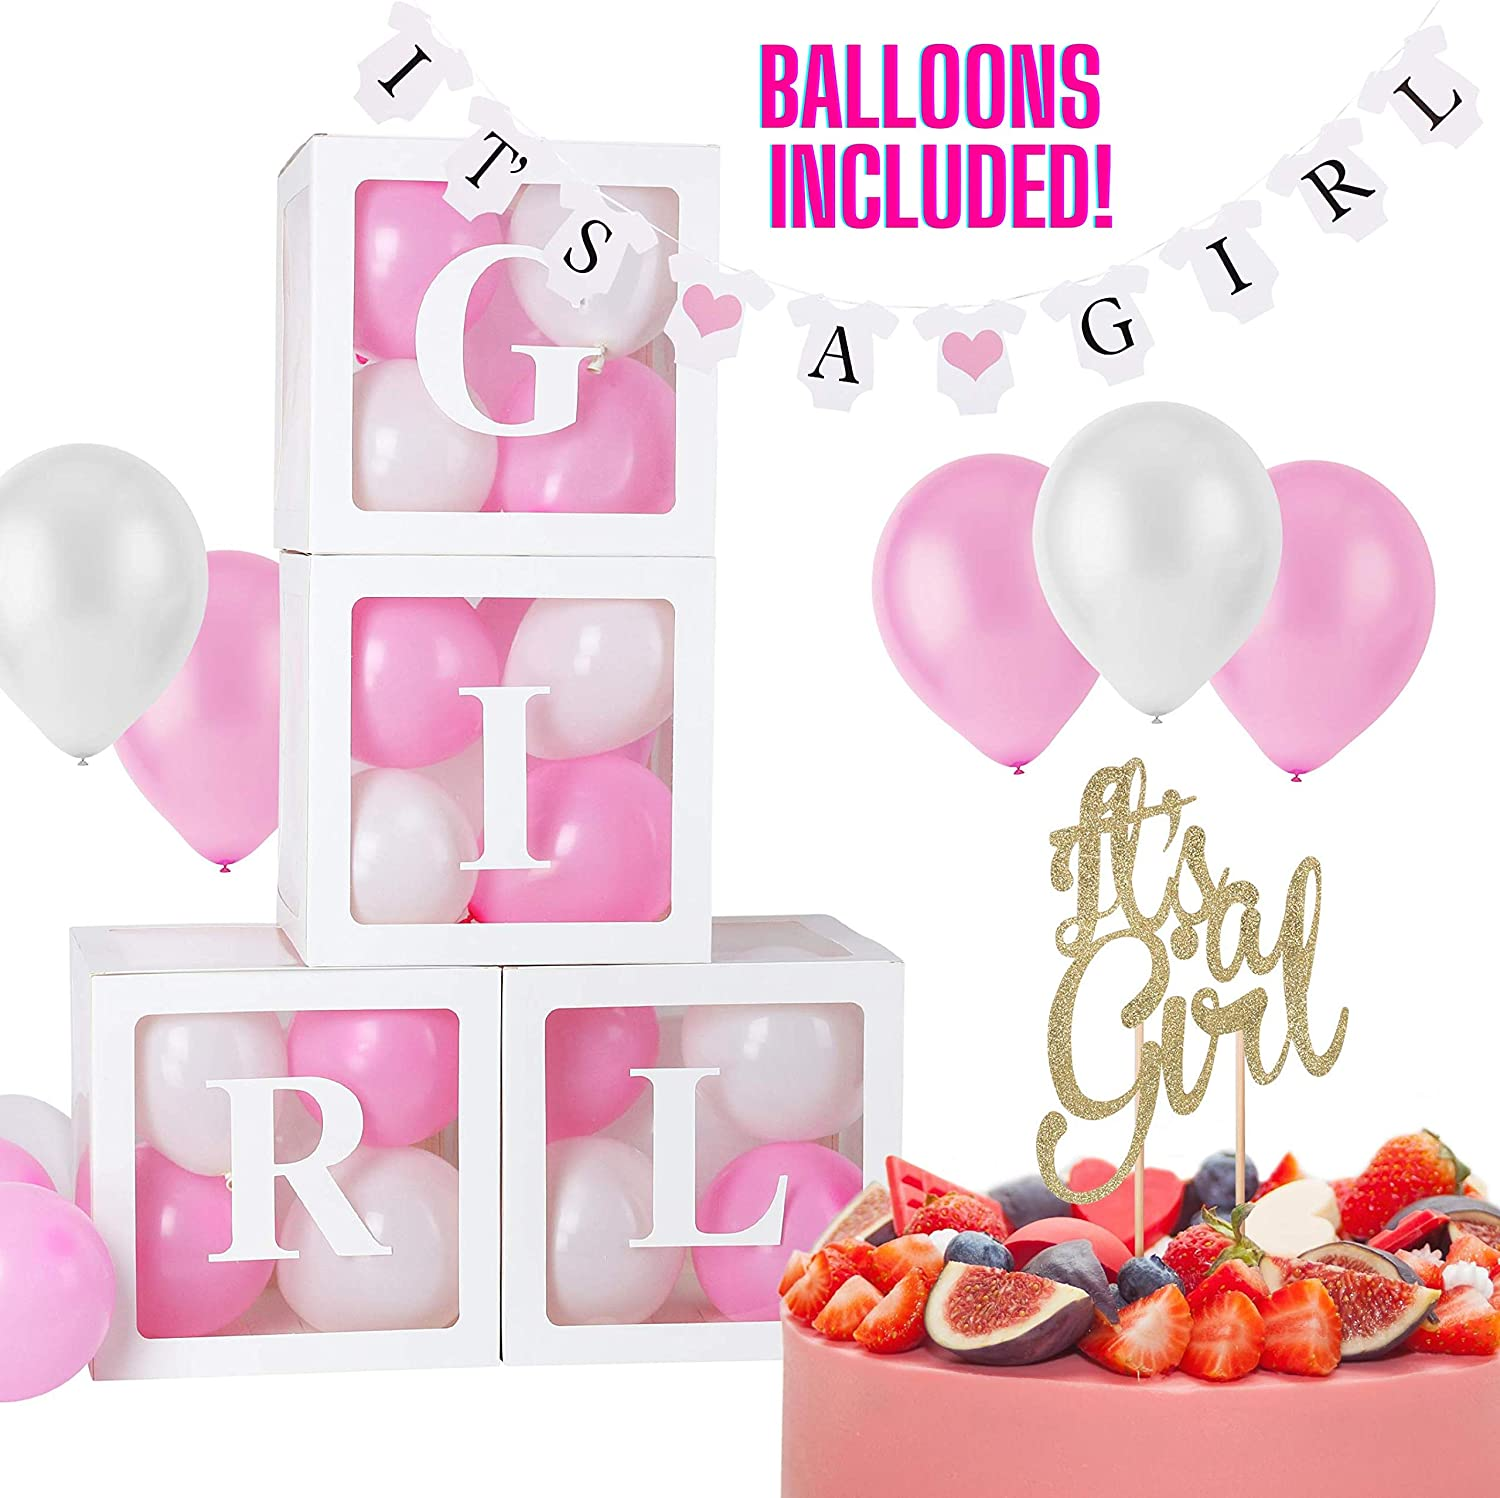 Girl Baby Shower Decoration Girl Birthday Party Ideas Pink and Gray Wedding Ideas BB9 Baby Shower Party Decorations Water Bottle Labels